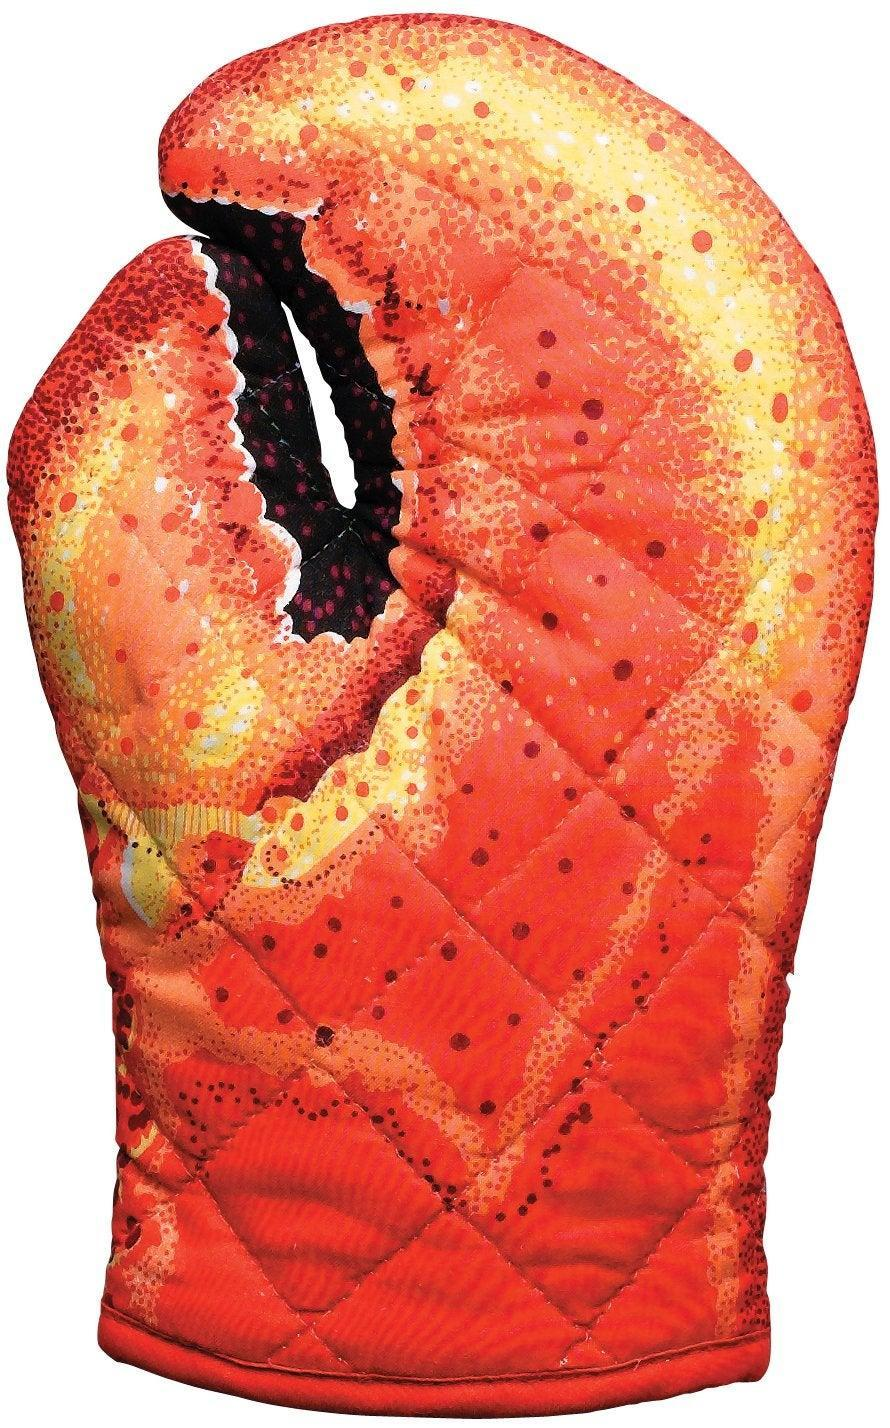 """In other kitchen-related White Elephant gifts, this highly-rated oven mitt is the perfect affordable present for the aspiring chef who loves to cook with <a href=""""https://www.youtube.com/watch?v=JzYMi5wSc7g"""" rel=""""nofollow noopener"""" target=""""_blank"""" data-ylk=""""slk:big, meaty claws"""" class=""""link rapid-noclick-resp"""">big, meaty claws</a>.<br><br><strong>Boston Warehouse</strong> Lobster Claw Oven Mitt, Quilted Cotton, $, available at <a href=""""https://amzn.to/2P9Wbt2"""" rel=""""nofollow noopener"""" target=""""_blank"""" data-ylk=""""slk:Amazon"""" class=""""link rapid-noclick-resp"""">Amazon</a>"""